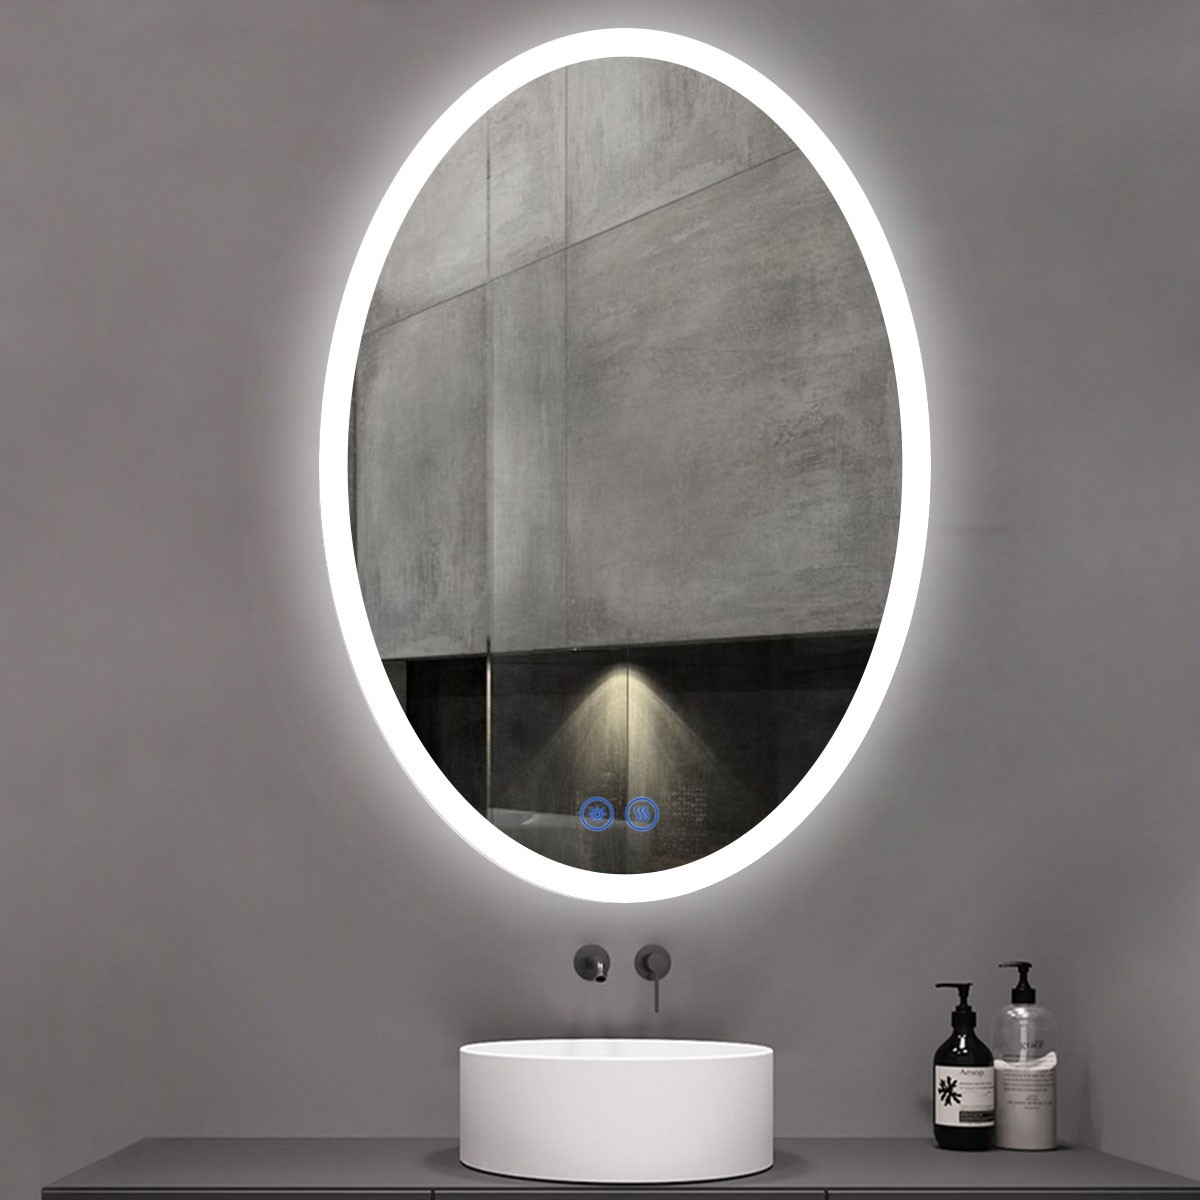 DECORAPORT 28 x 40 Inch LED Bathroom Mirror/Dress Mirror with Touch Button, Anti Fog, Dimmable, Vertical Mount (TT03-2840)